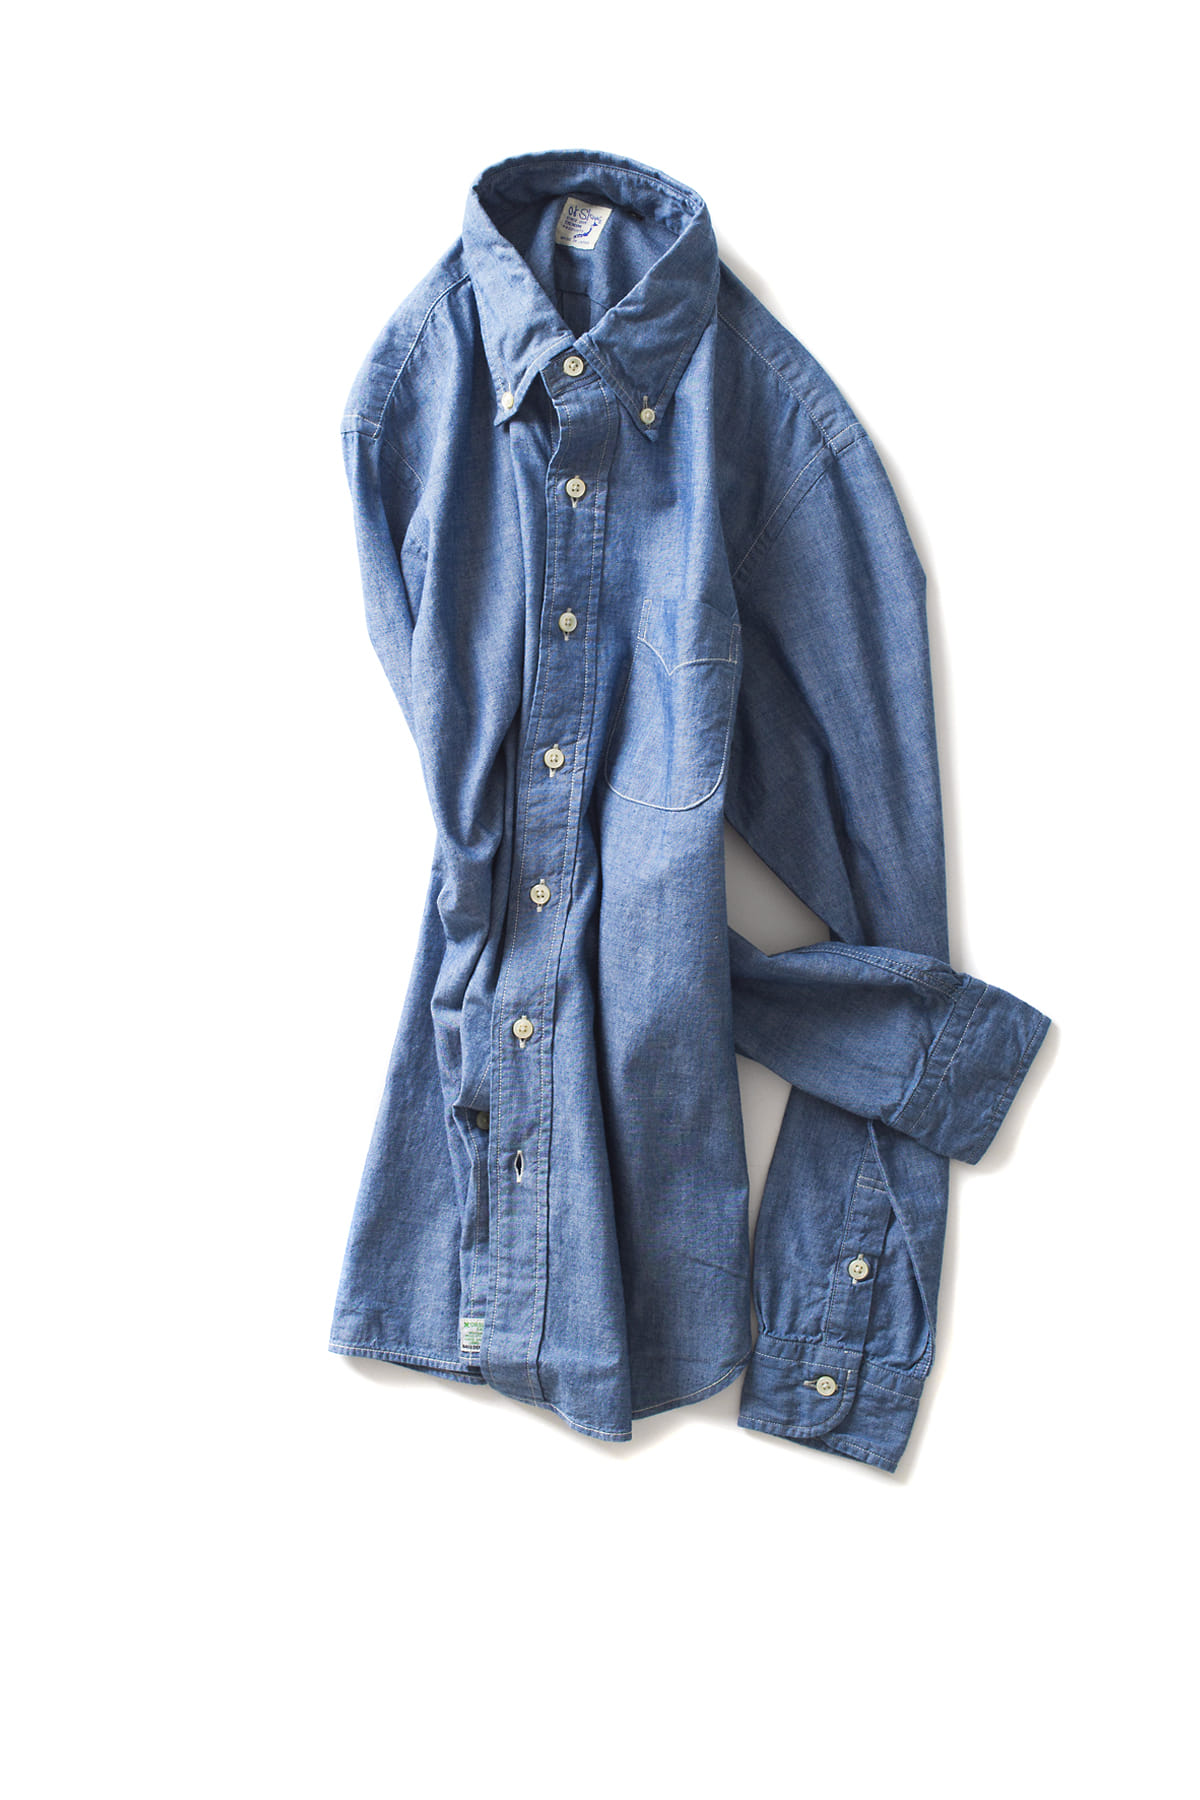 orSlow : Button Down Shirt (84 Chambray)